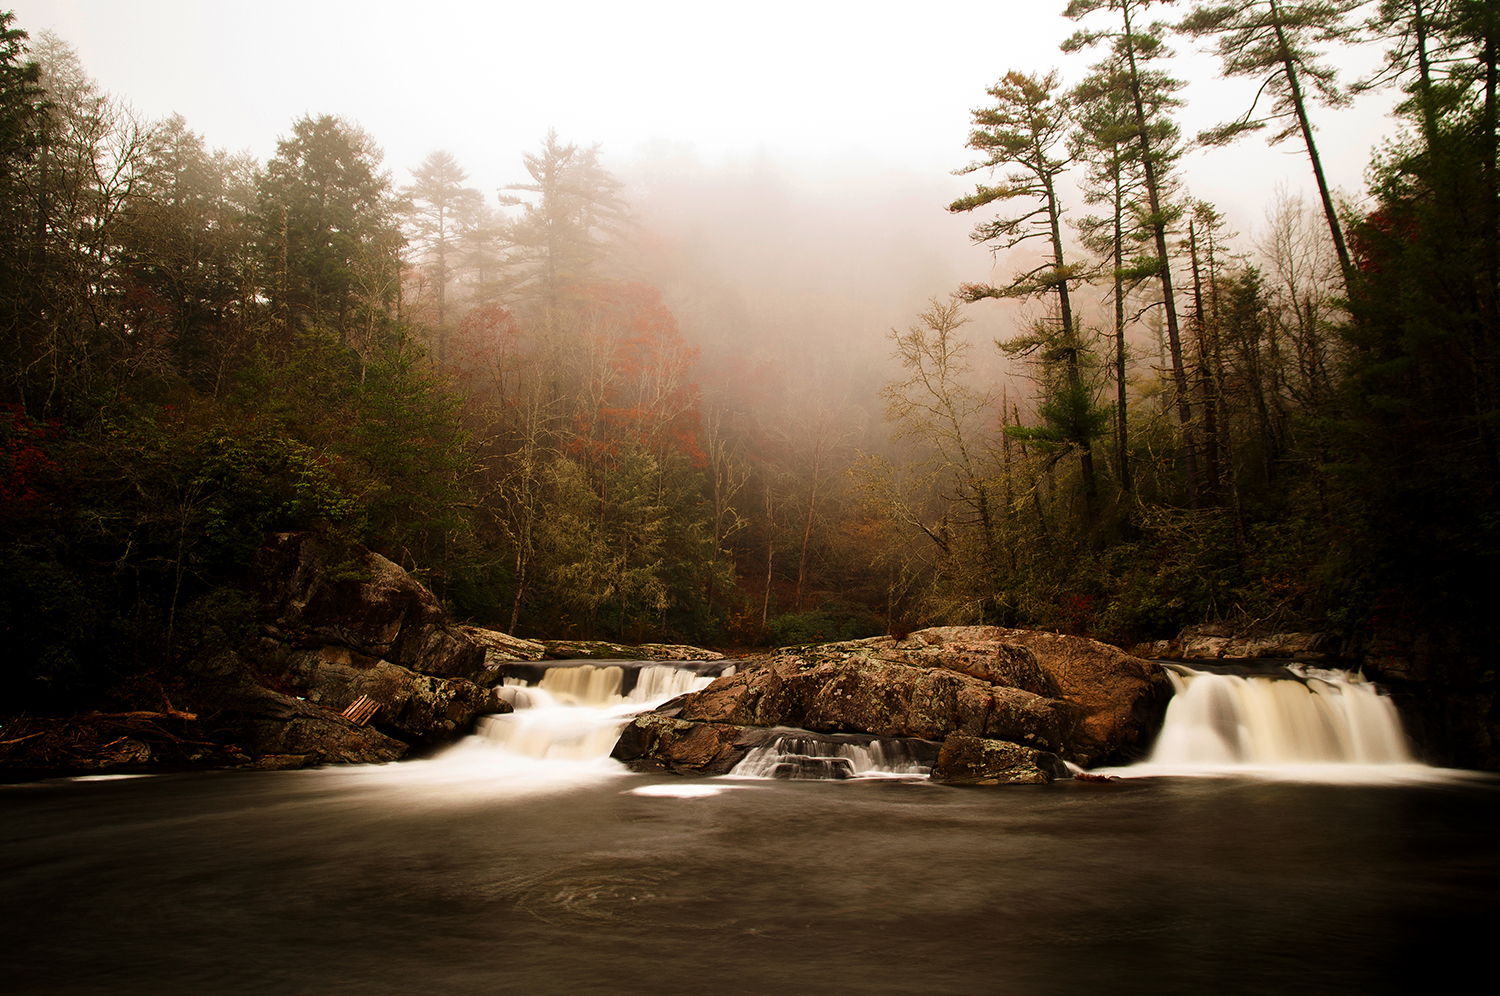 A foggy day at Linville Falls